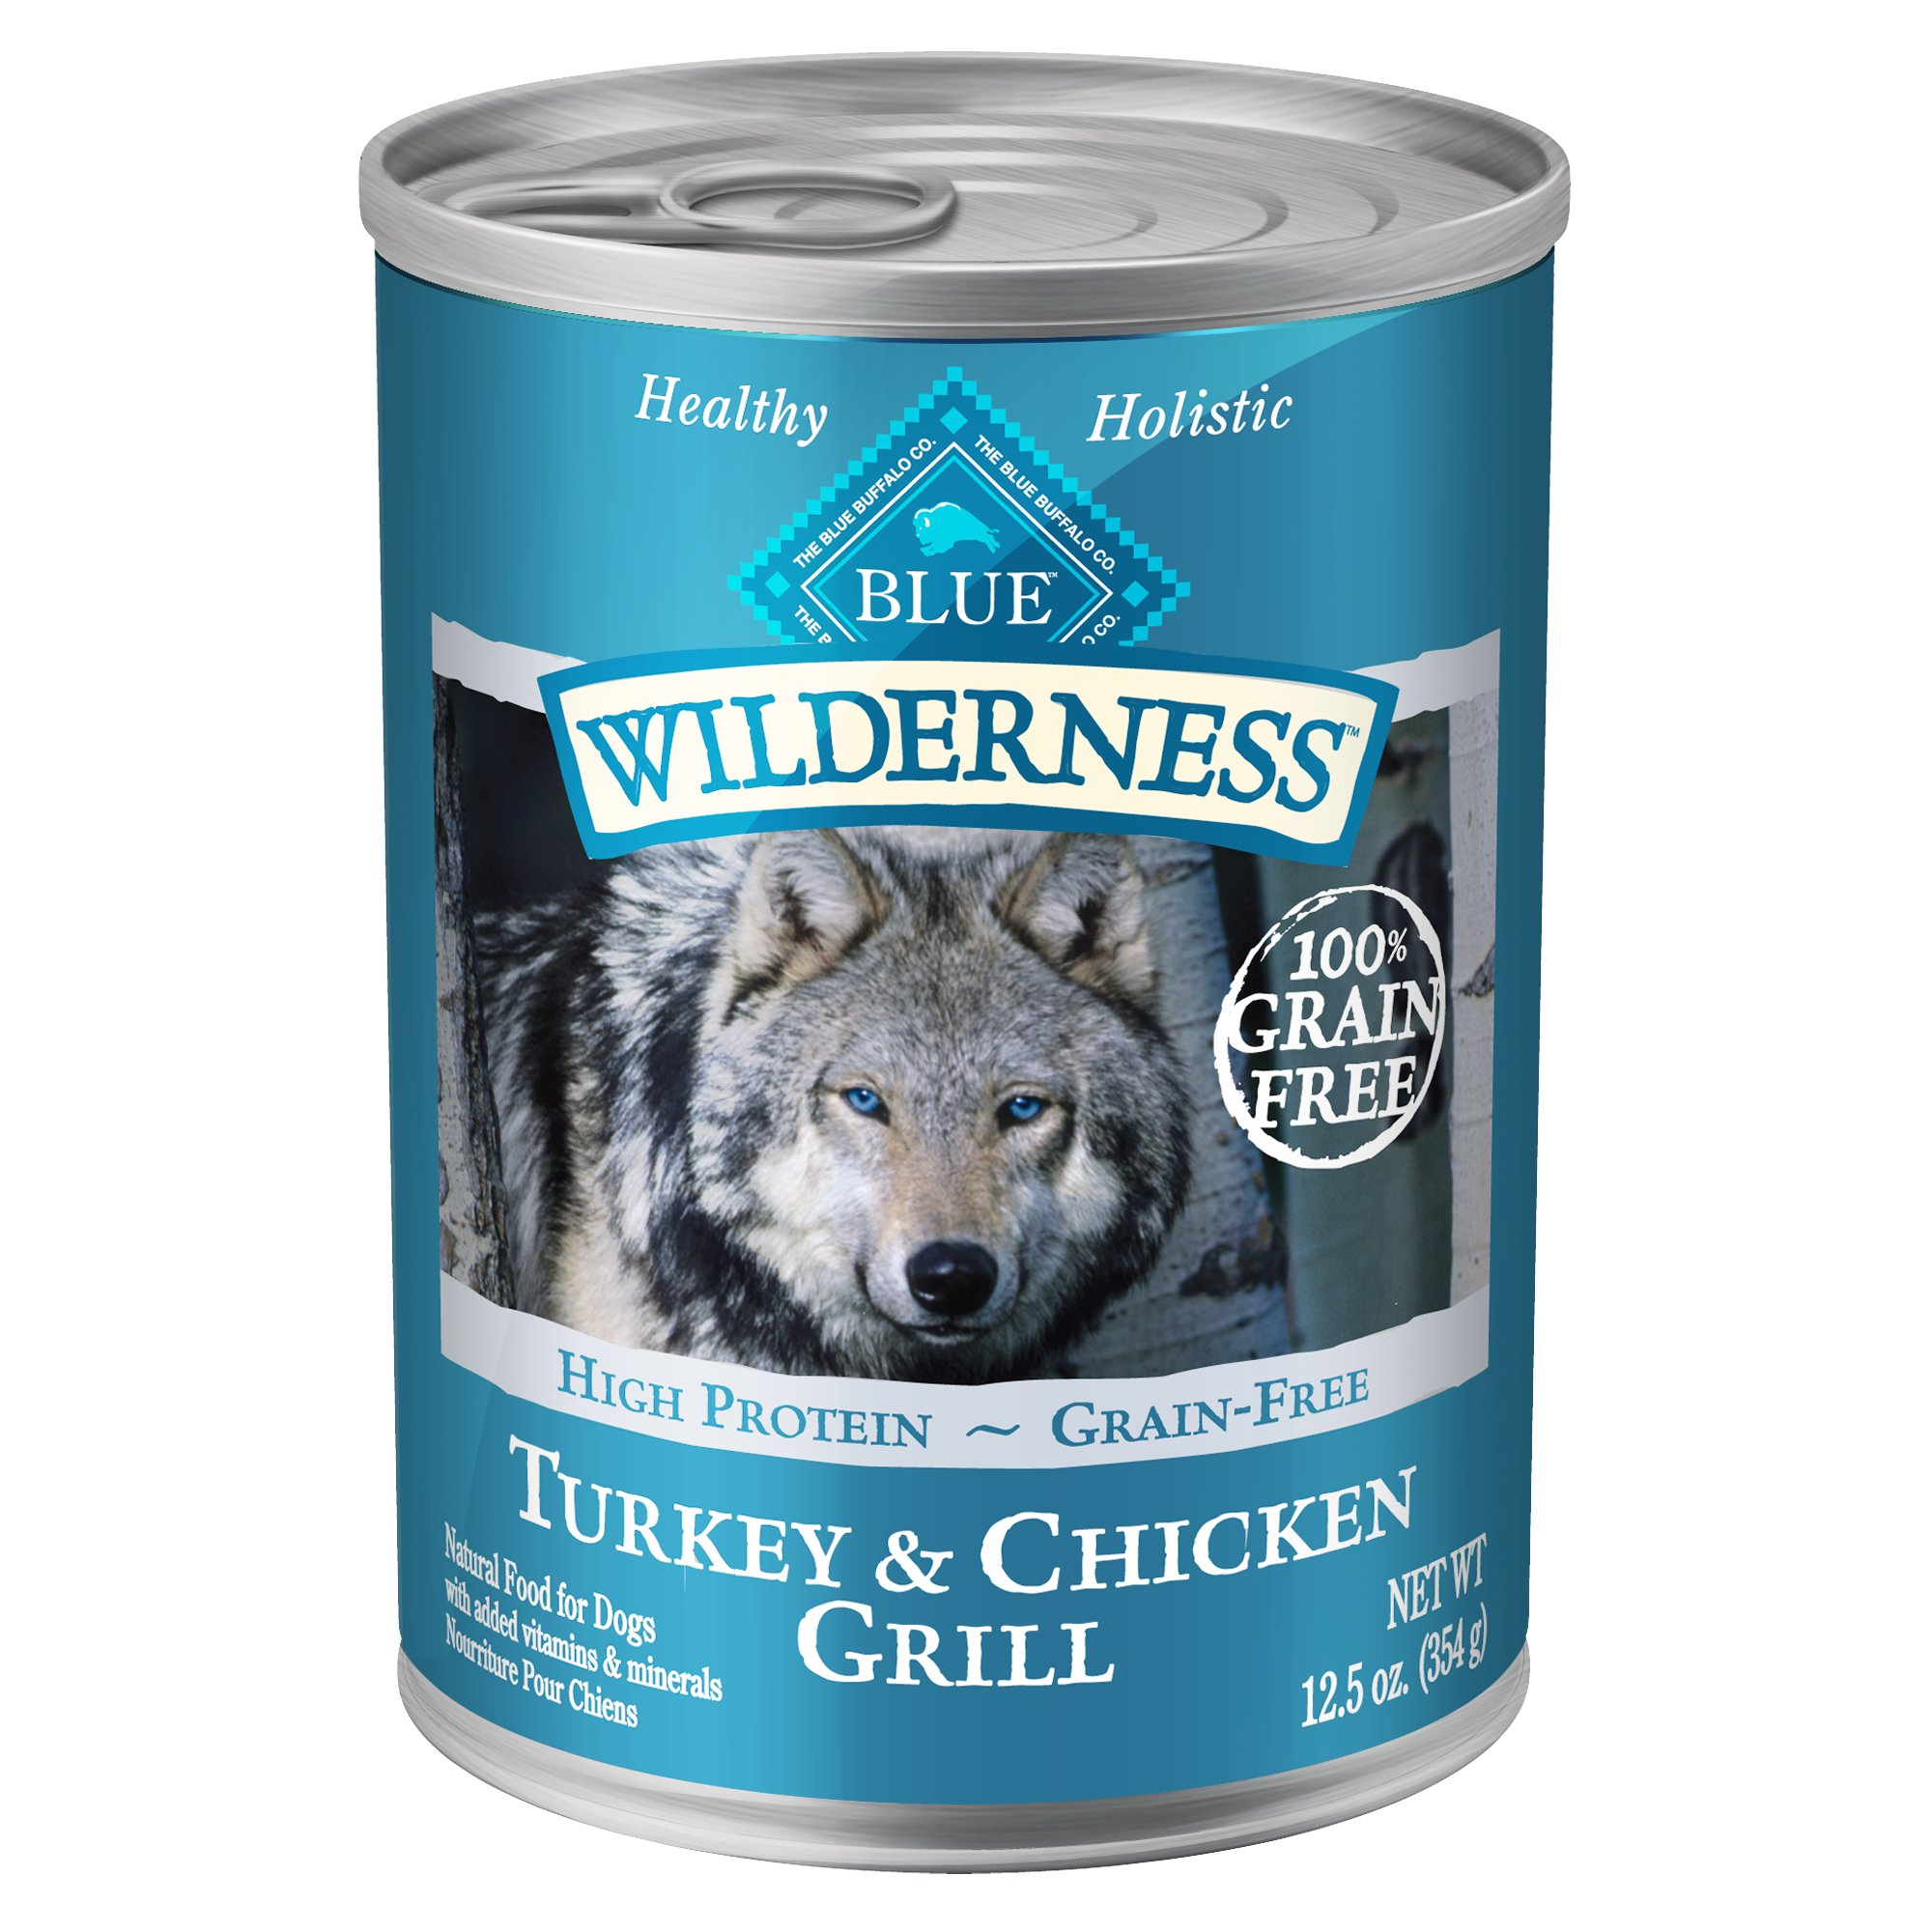 Find a Store Carrying Our Products Near YouHealthy For Pets · Wholesome IngredientsTypes: Wet & Dry Dog Food, Dog Treats, Wet & Dry Cat Food, Gluten Free Dog Food.